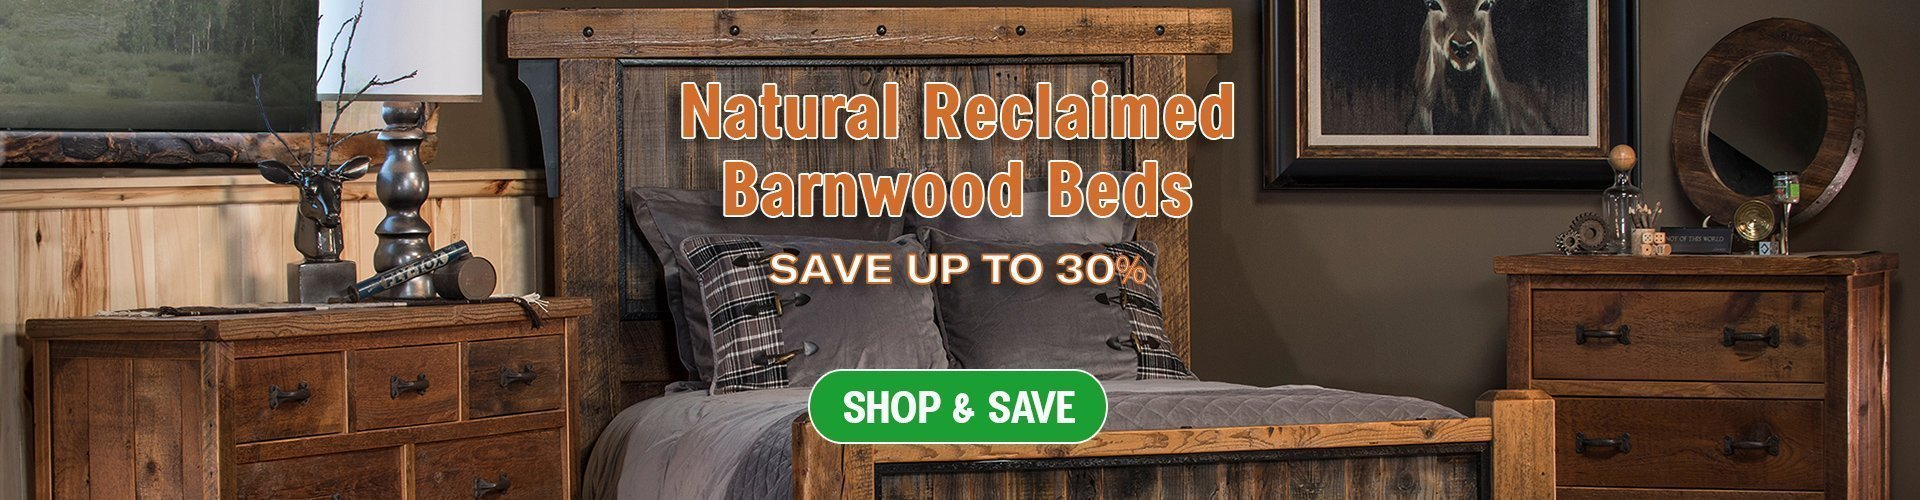 Reclaimed Barn Wood Beds_010918